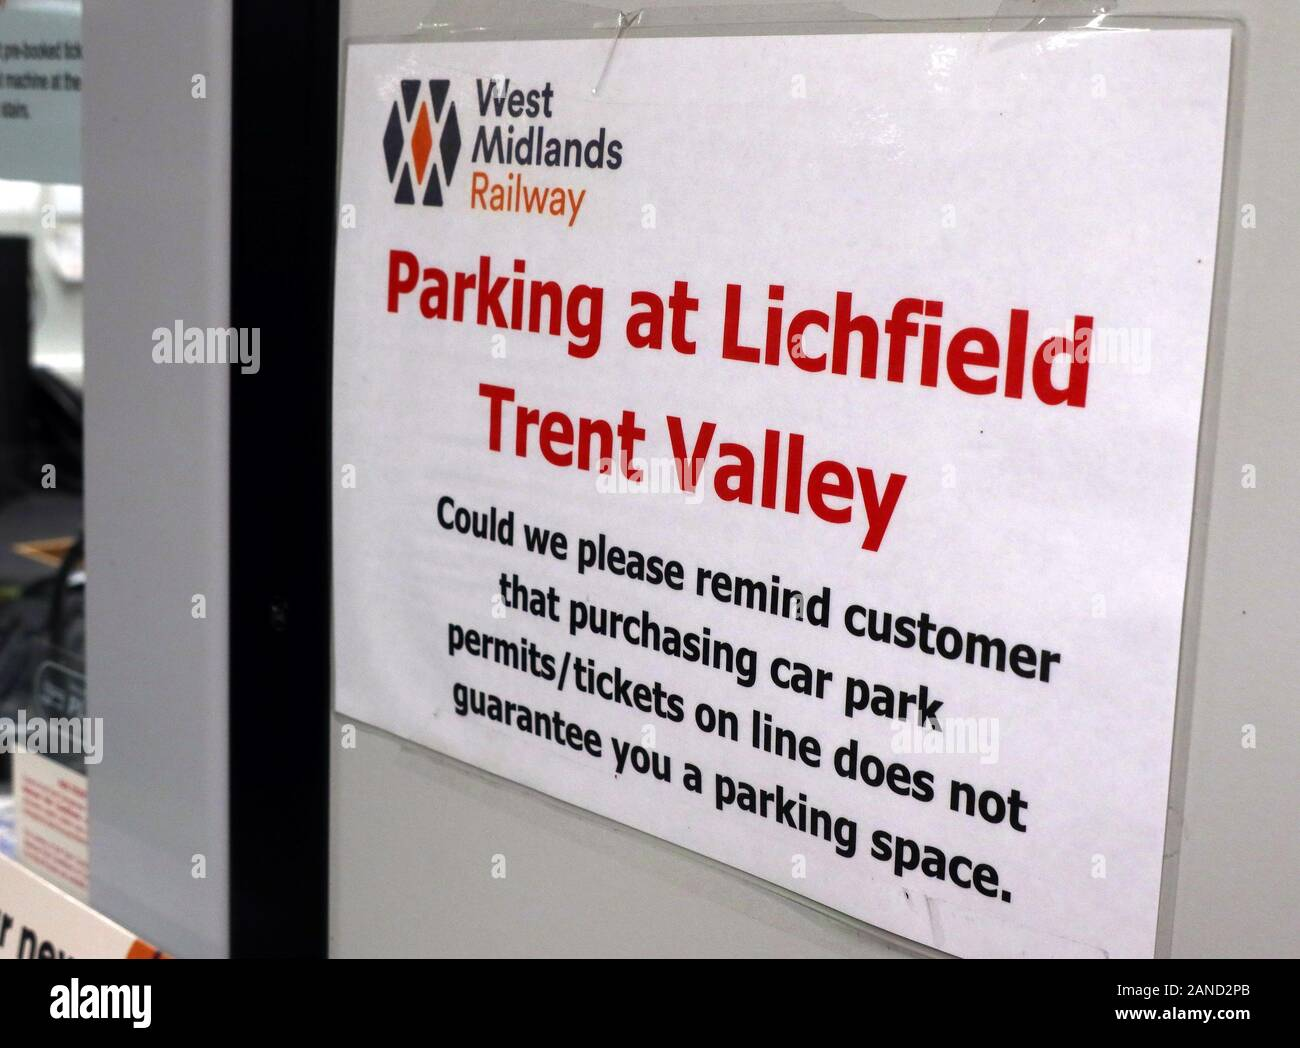 GoTonySmith,HotpixUK,@Hotpixuk,railway Station,Royal,West Midlands,England,Midlands,train,trains,public transport,station,rail,railway,night,WS13,Parking,parking issues,Lichfield,Trent Valley,permit,ticket,on line,sign,notice,notification,purchasing tickets,WS16,parking spaces,lack of,lack of parking spaces,insufficient parking,stations,west midland,SABA app,SABA,parking App